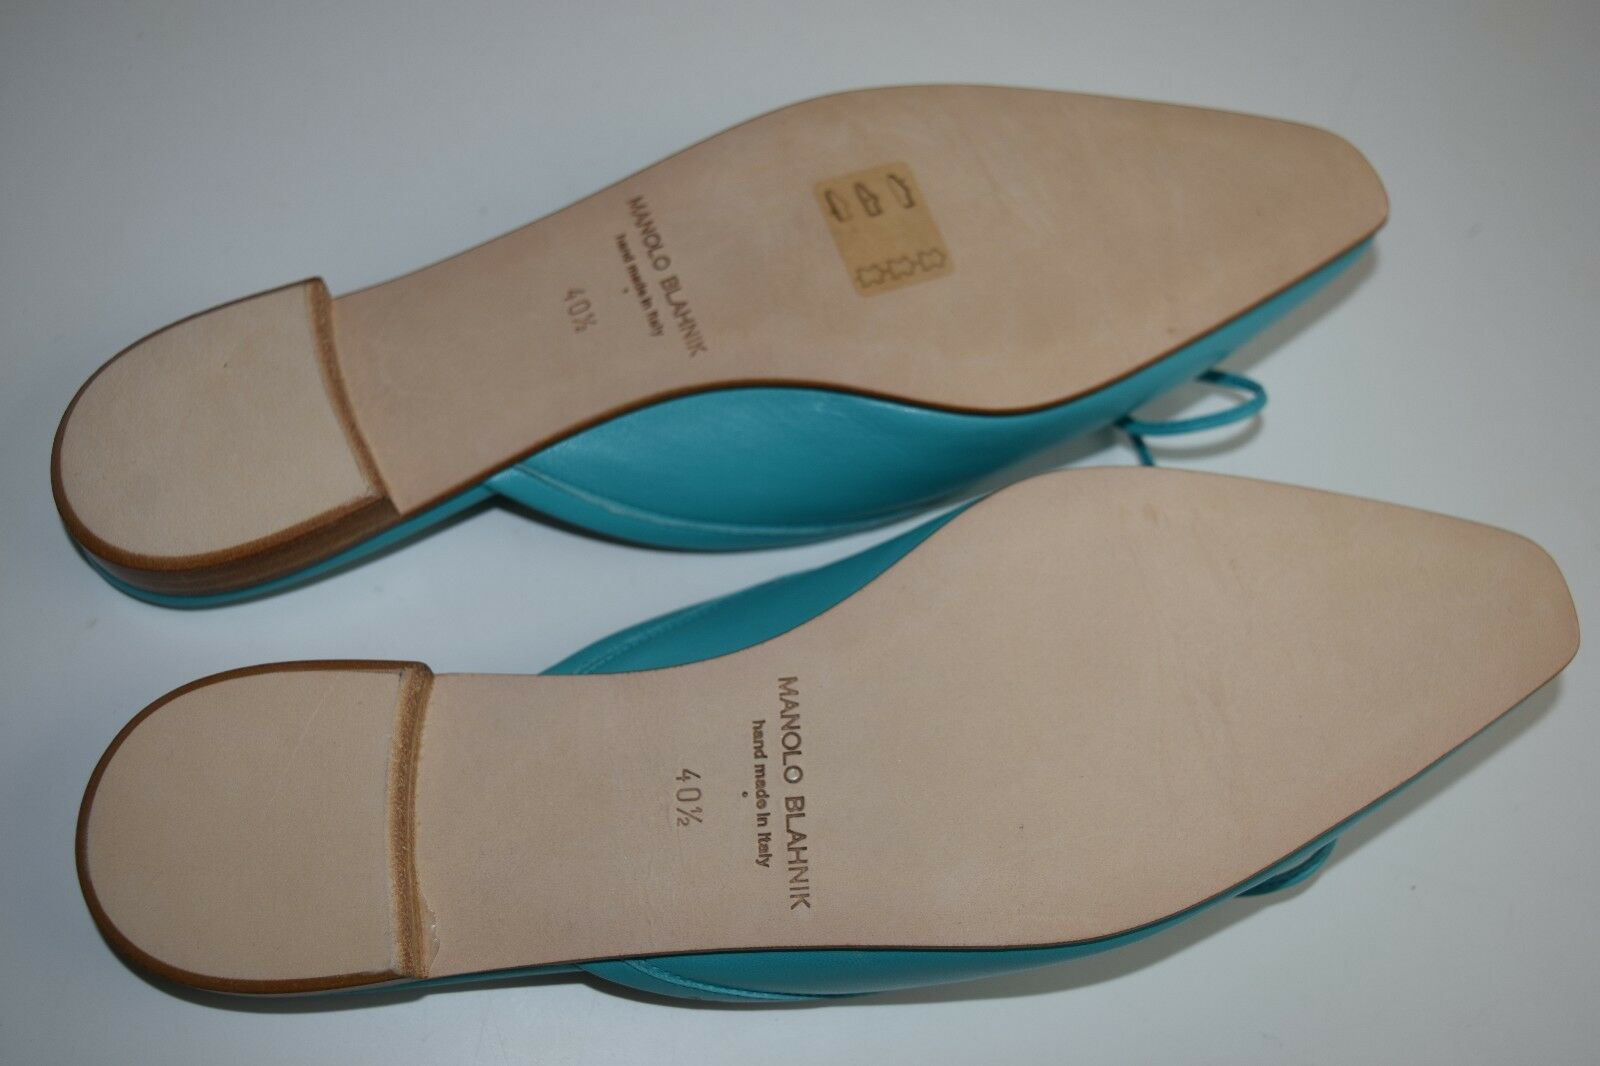 New Manolo Blahnik Ballerimu Ballerimu Ballerimu Leather Bow Mules Flats chaussures Turquoise 39 40.5 41.5 1fef8f